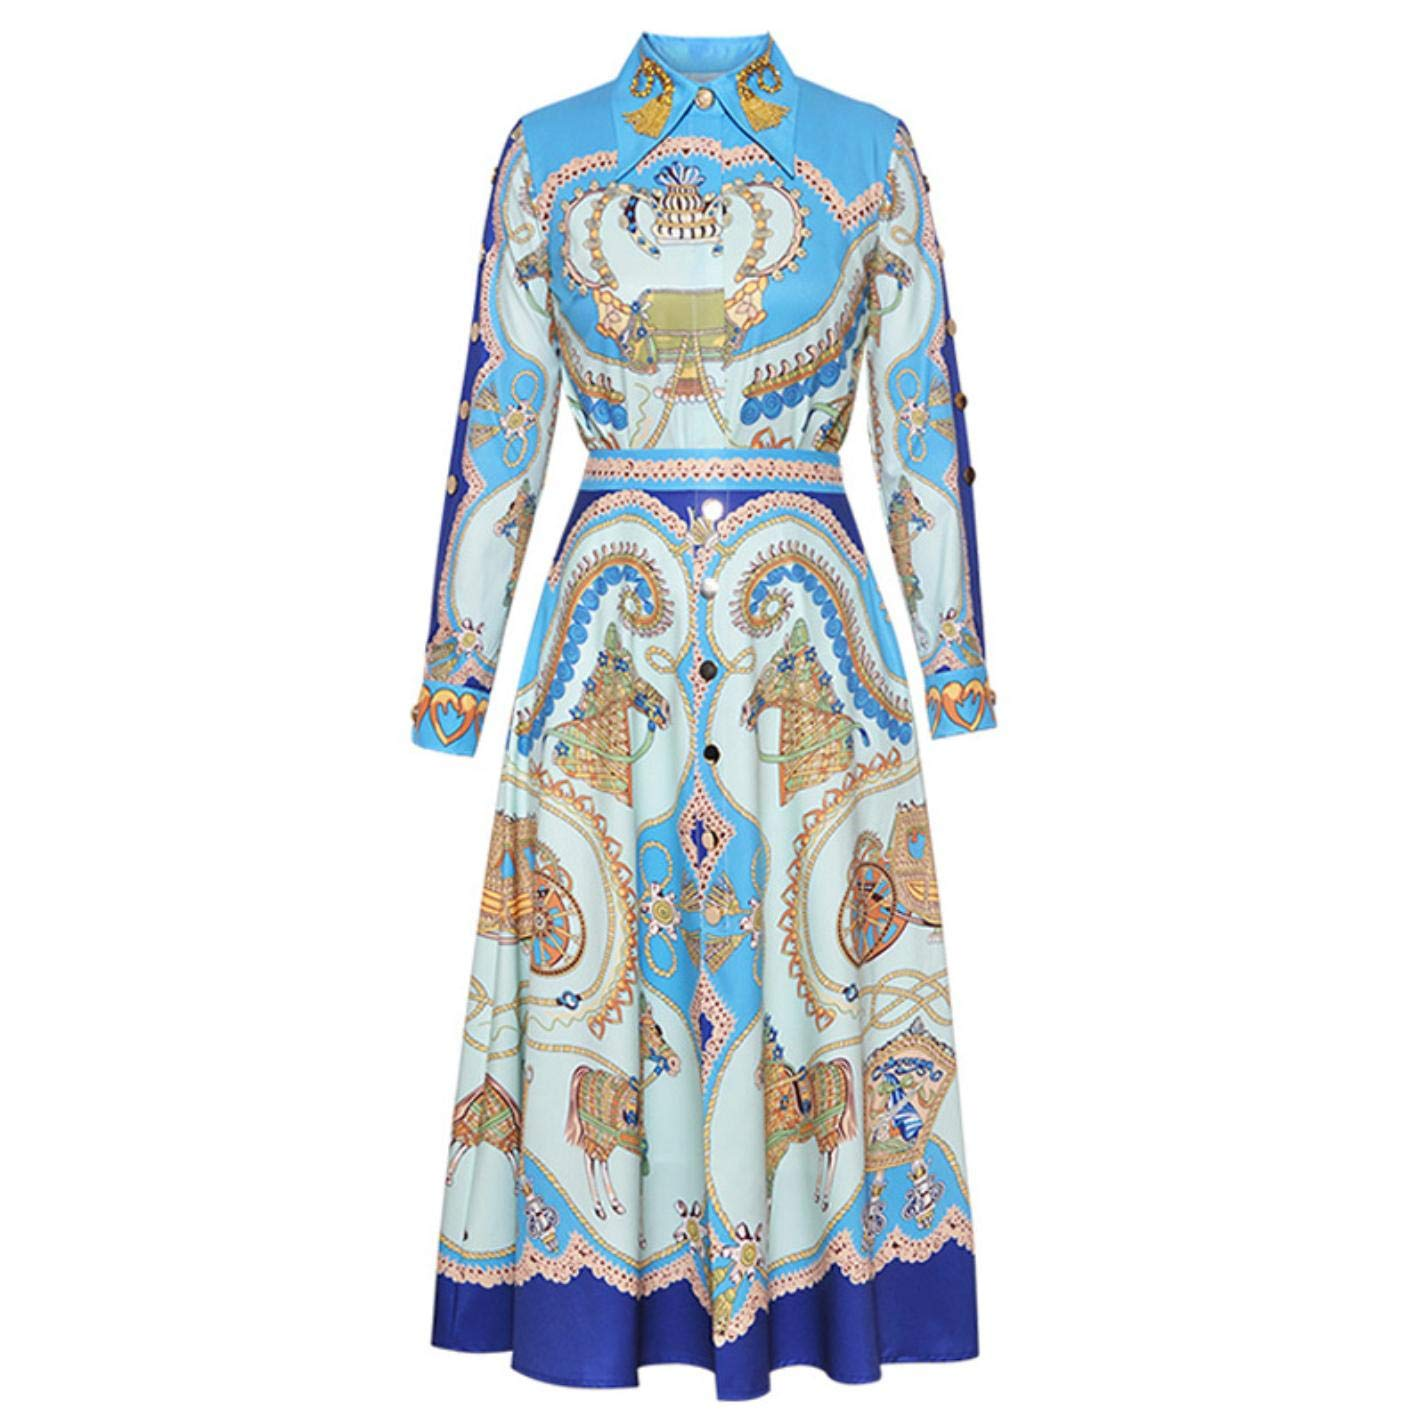 Womens Beaded Turn-Down Long Sleeve Vintage Shirts + A Line Skirt Suit